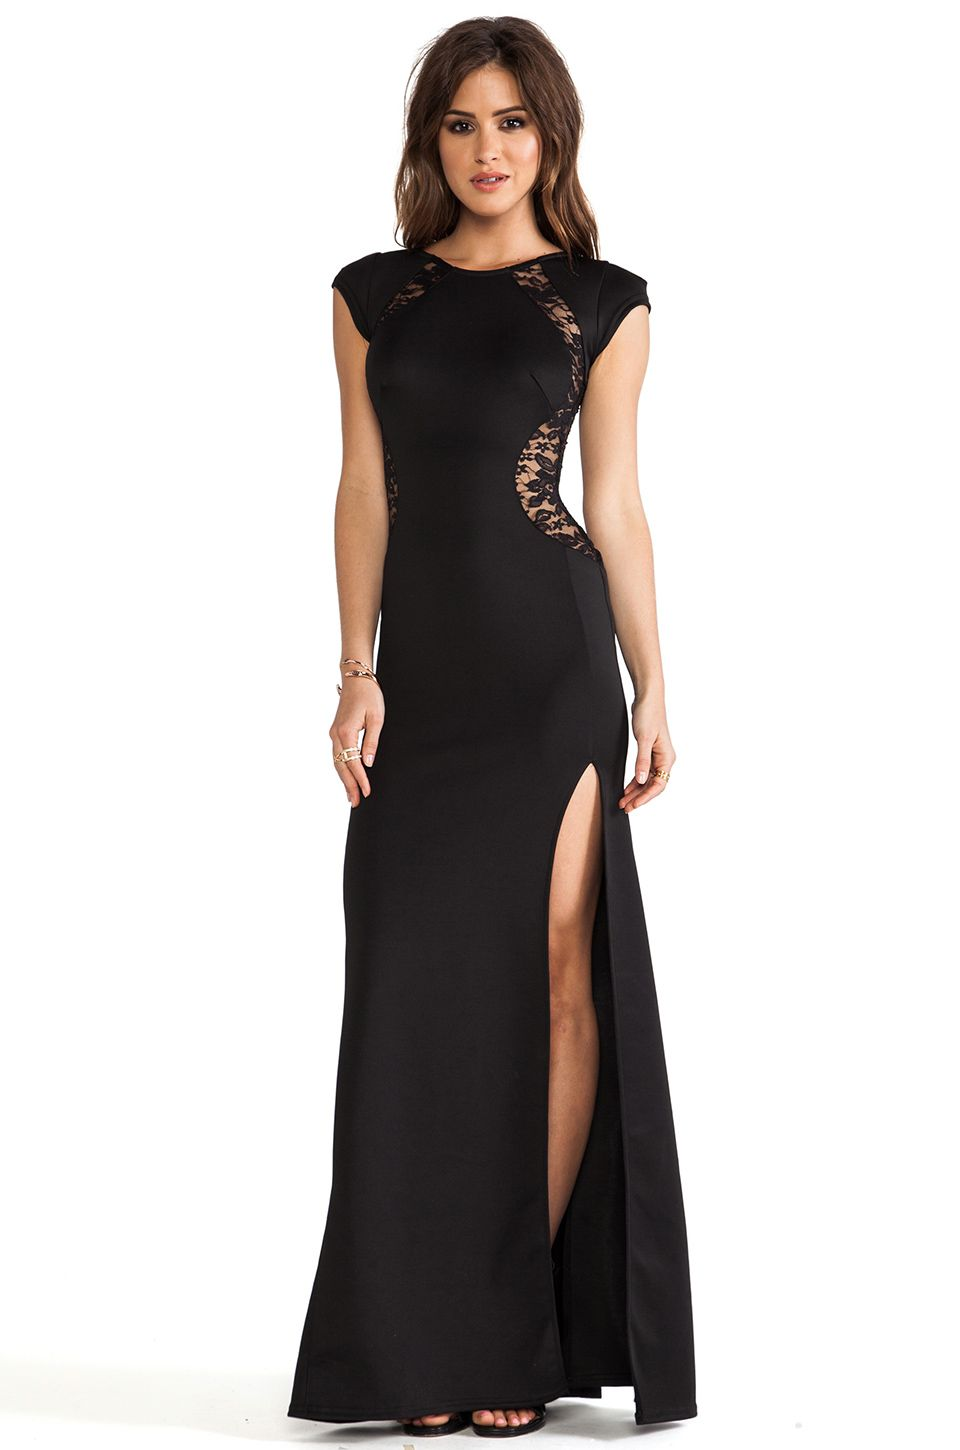 to wear - Maxi eve stylish dresses video